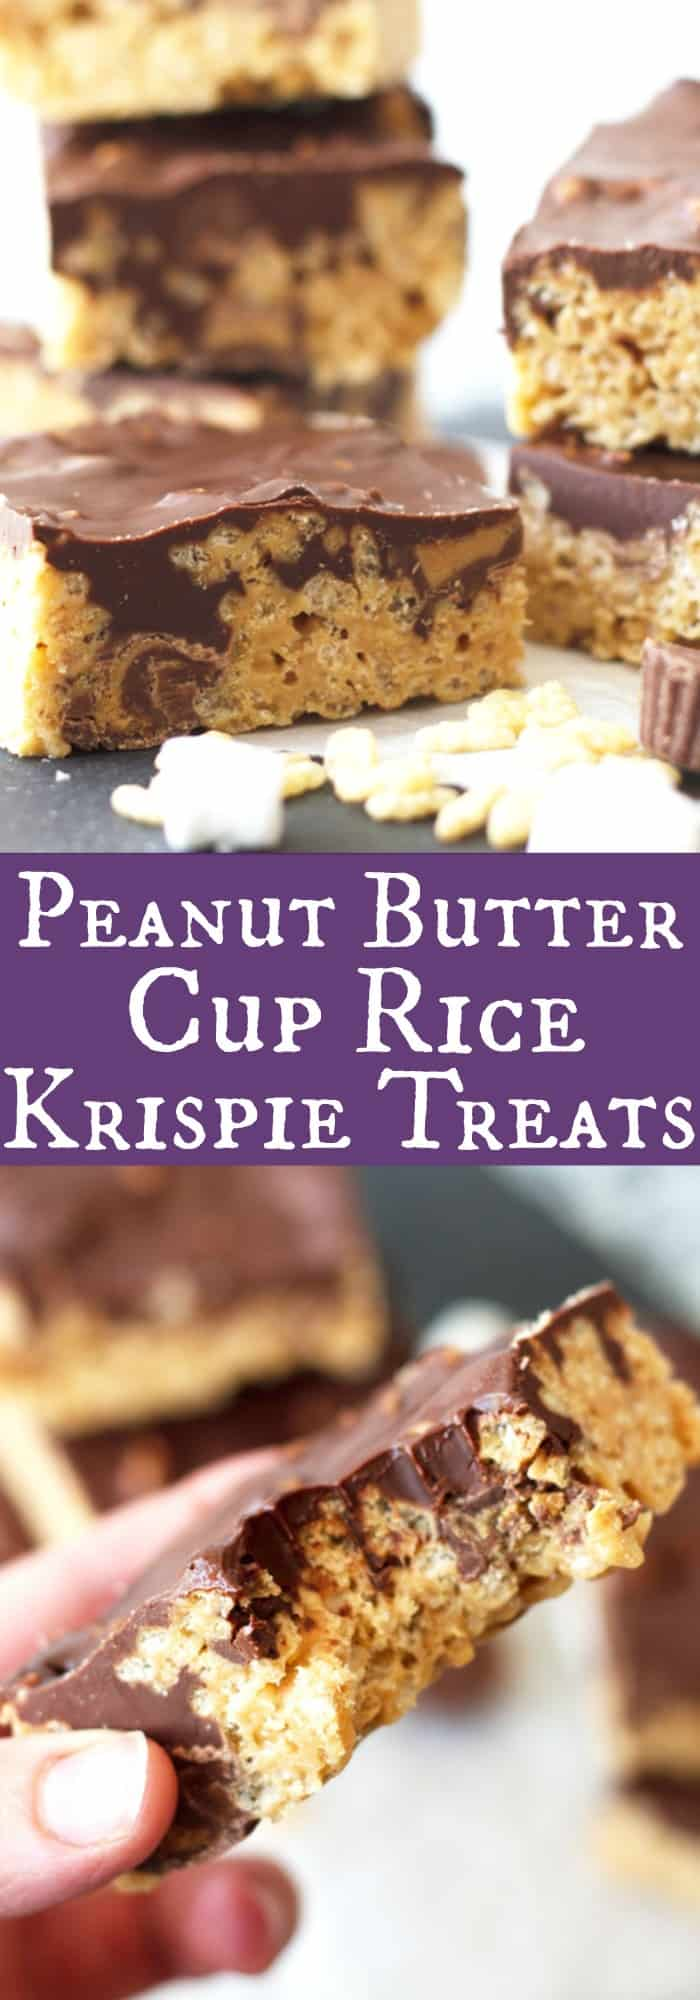 Peanut Butter Cup Rice Krispie Treats -peanut butter flavored rice ...